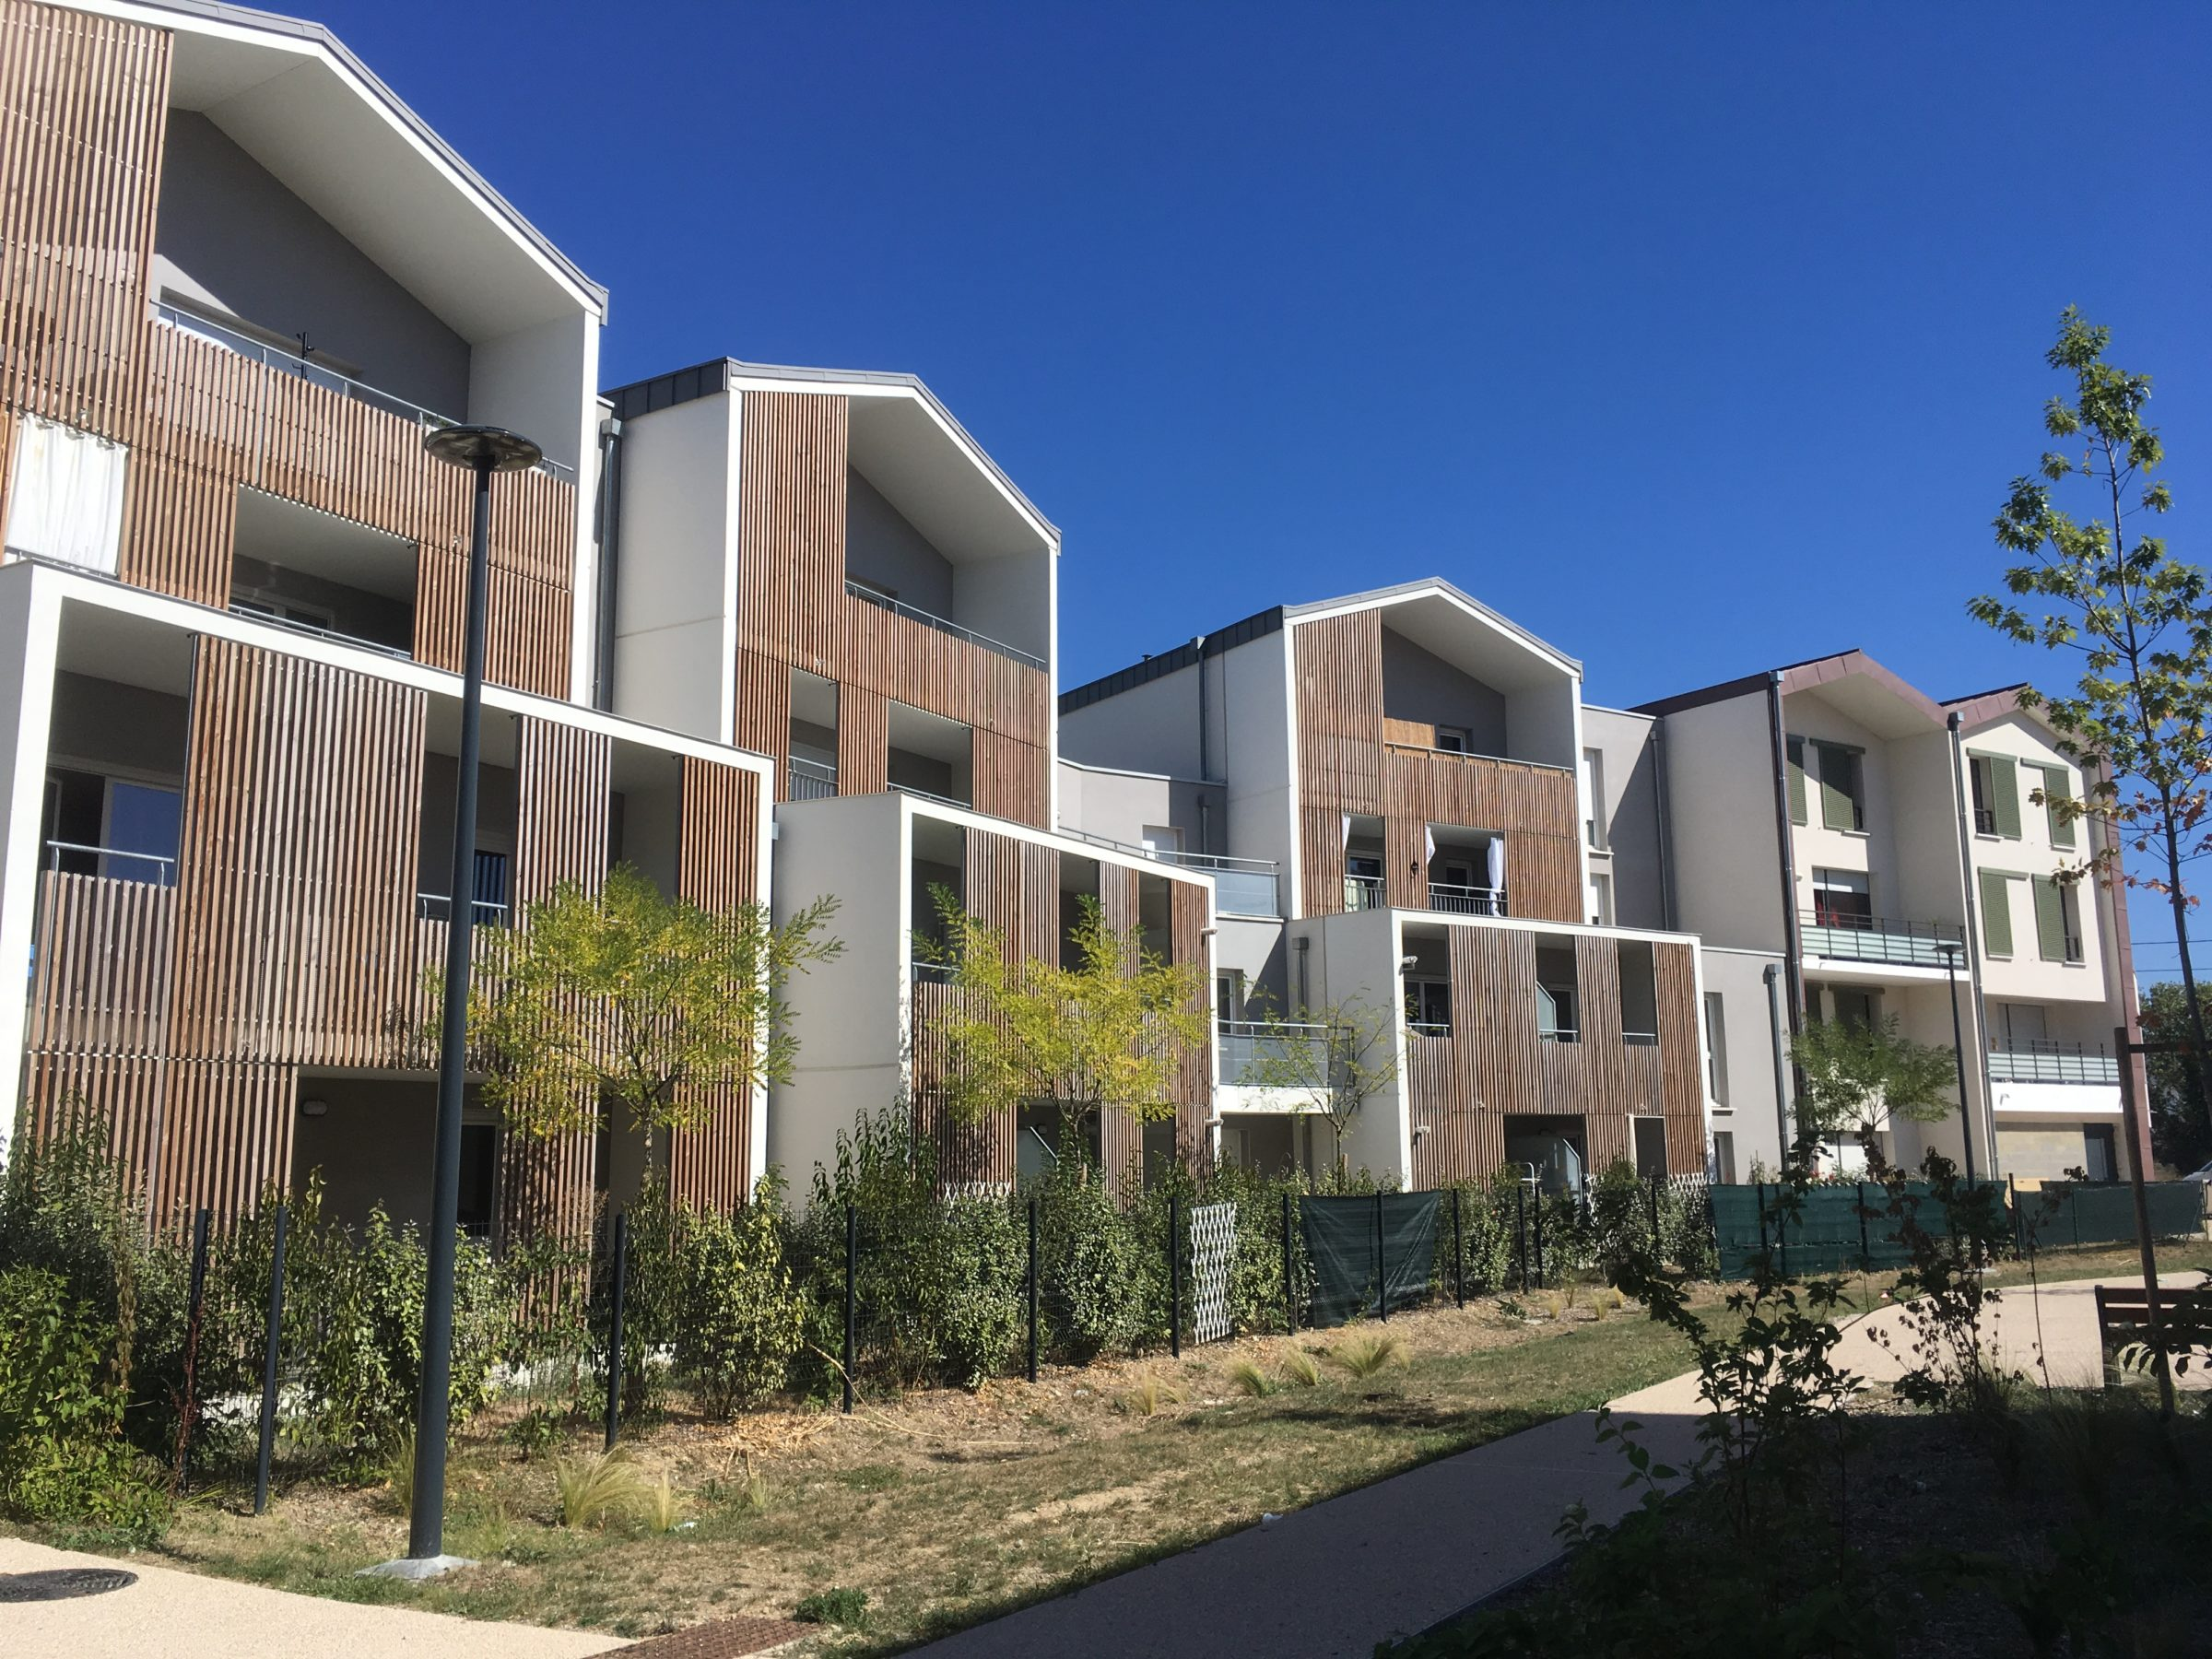 ville durable ecocity eco quartier